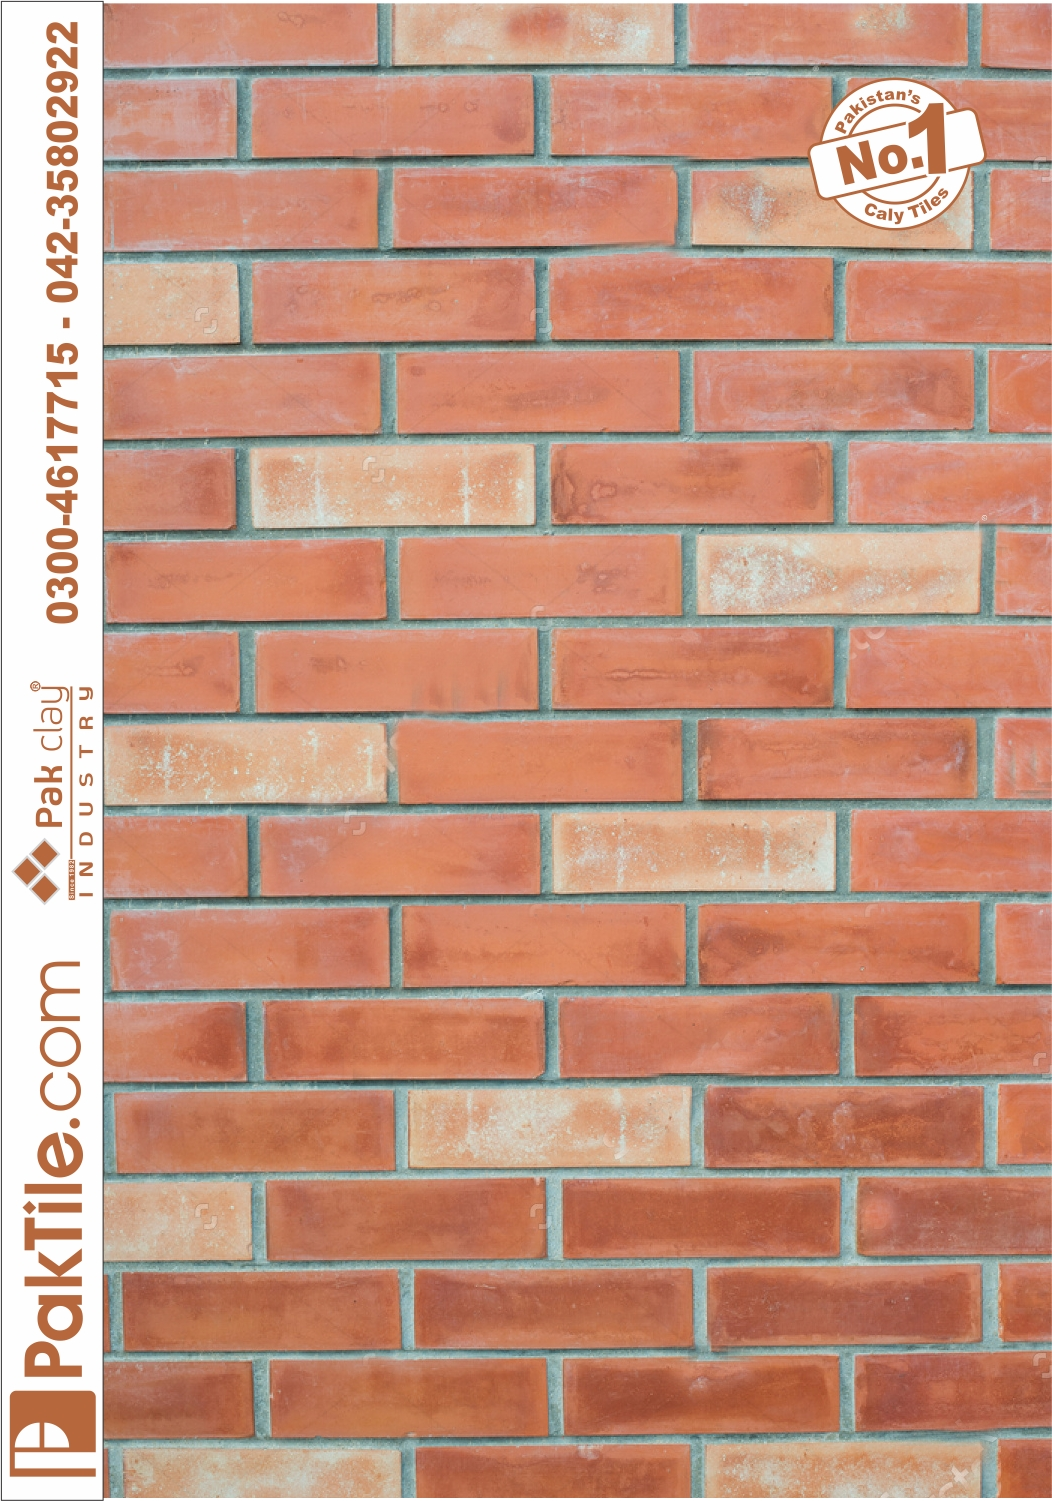 7 Pak clay tiles red gutka bricks price in lahore pakistan images